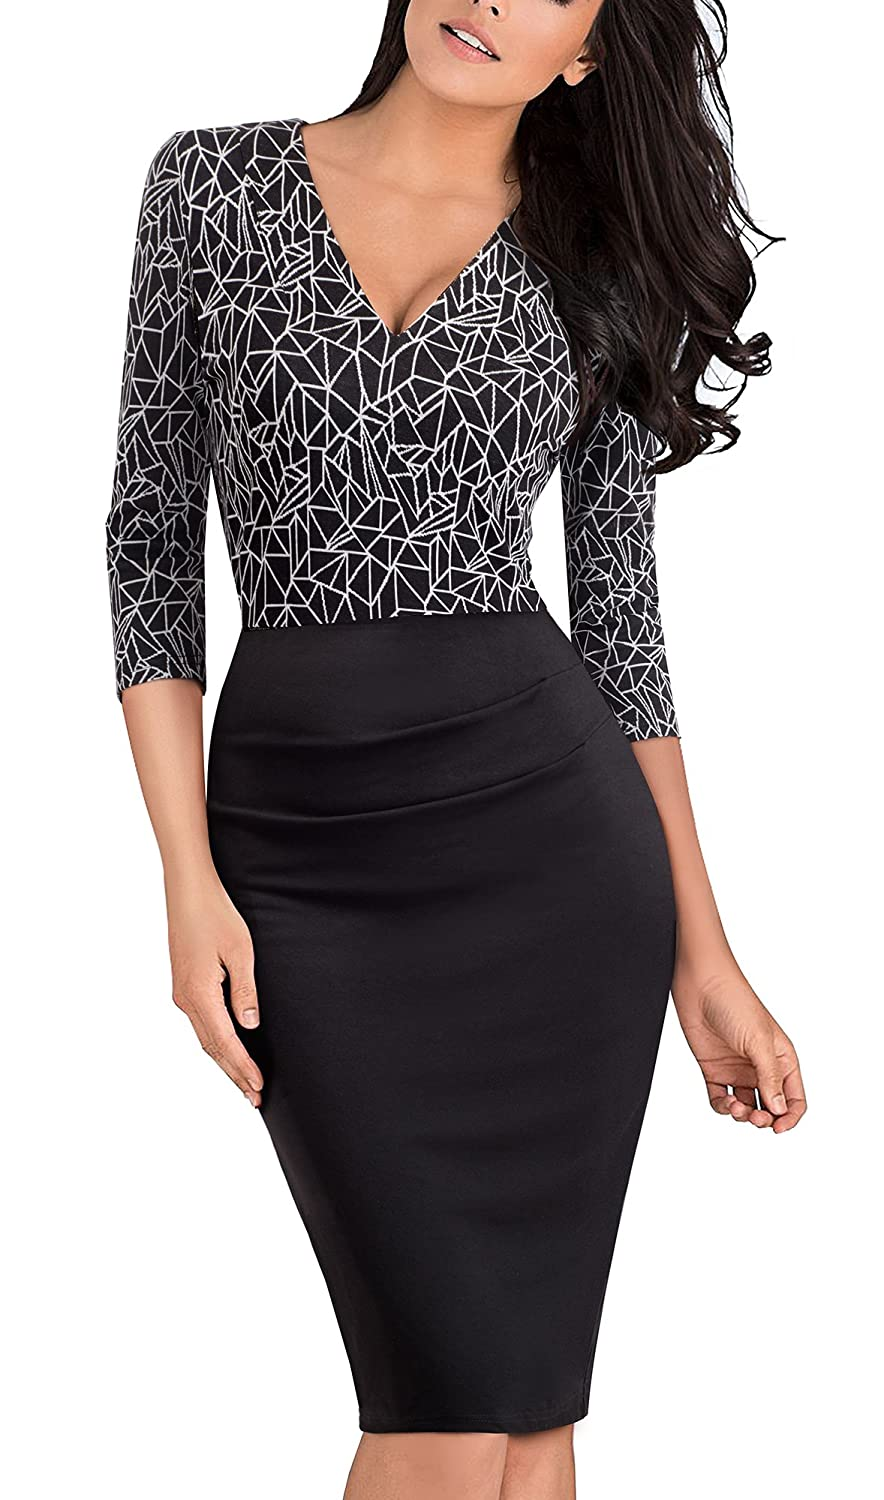 HOMEYEE Women's Elegant V-Neck 3/4 Sleeve Wear To Work Formal Dress B418